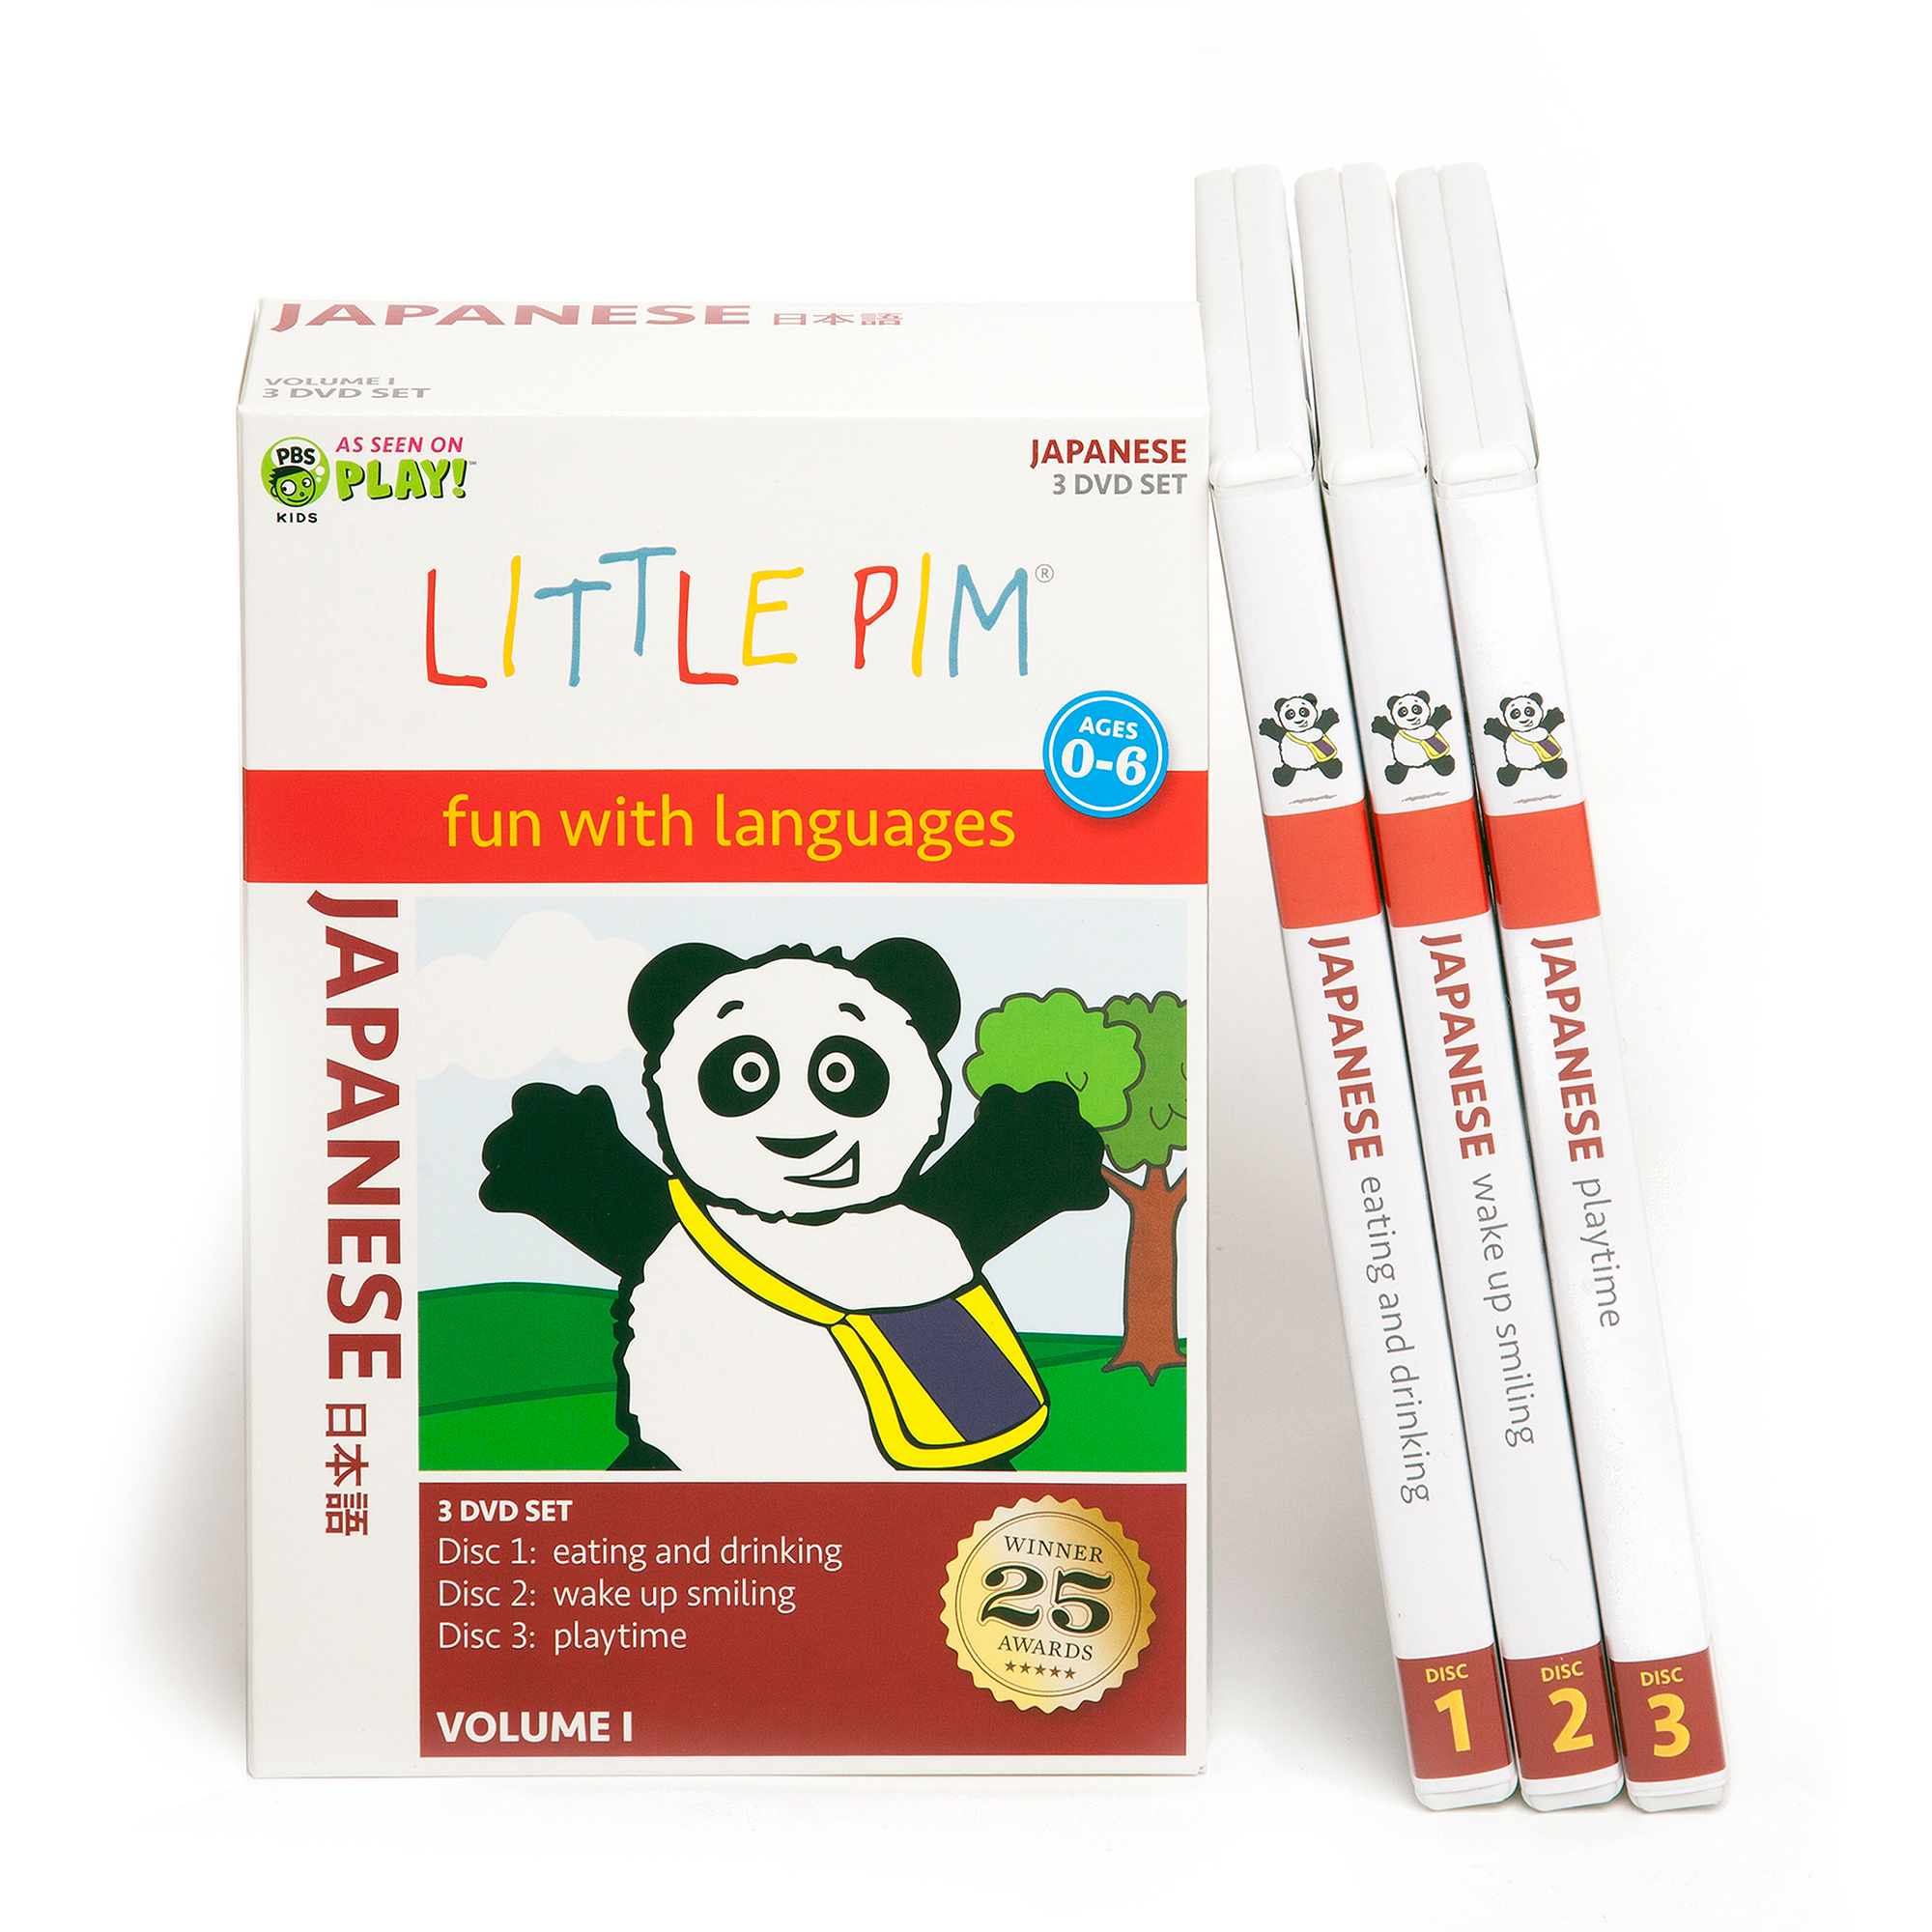 Little Pim Japanese 3pk, Vol. I